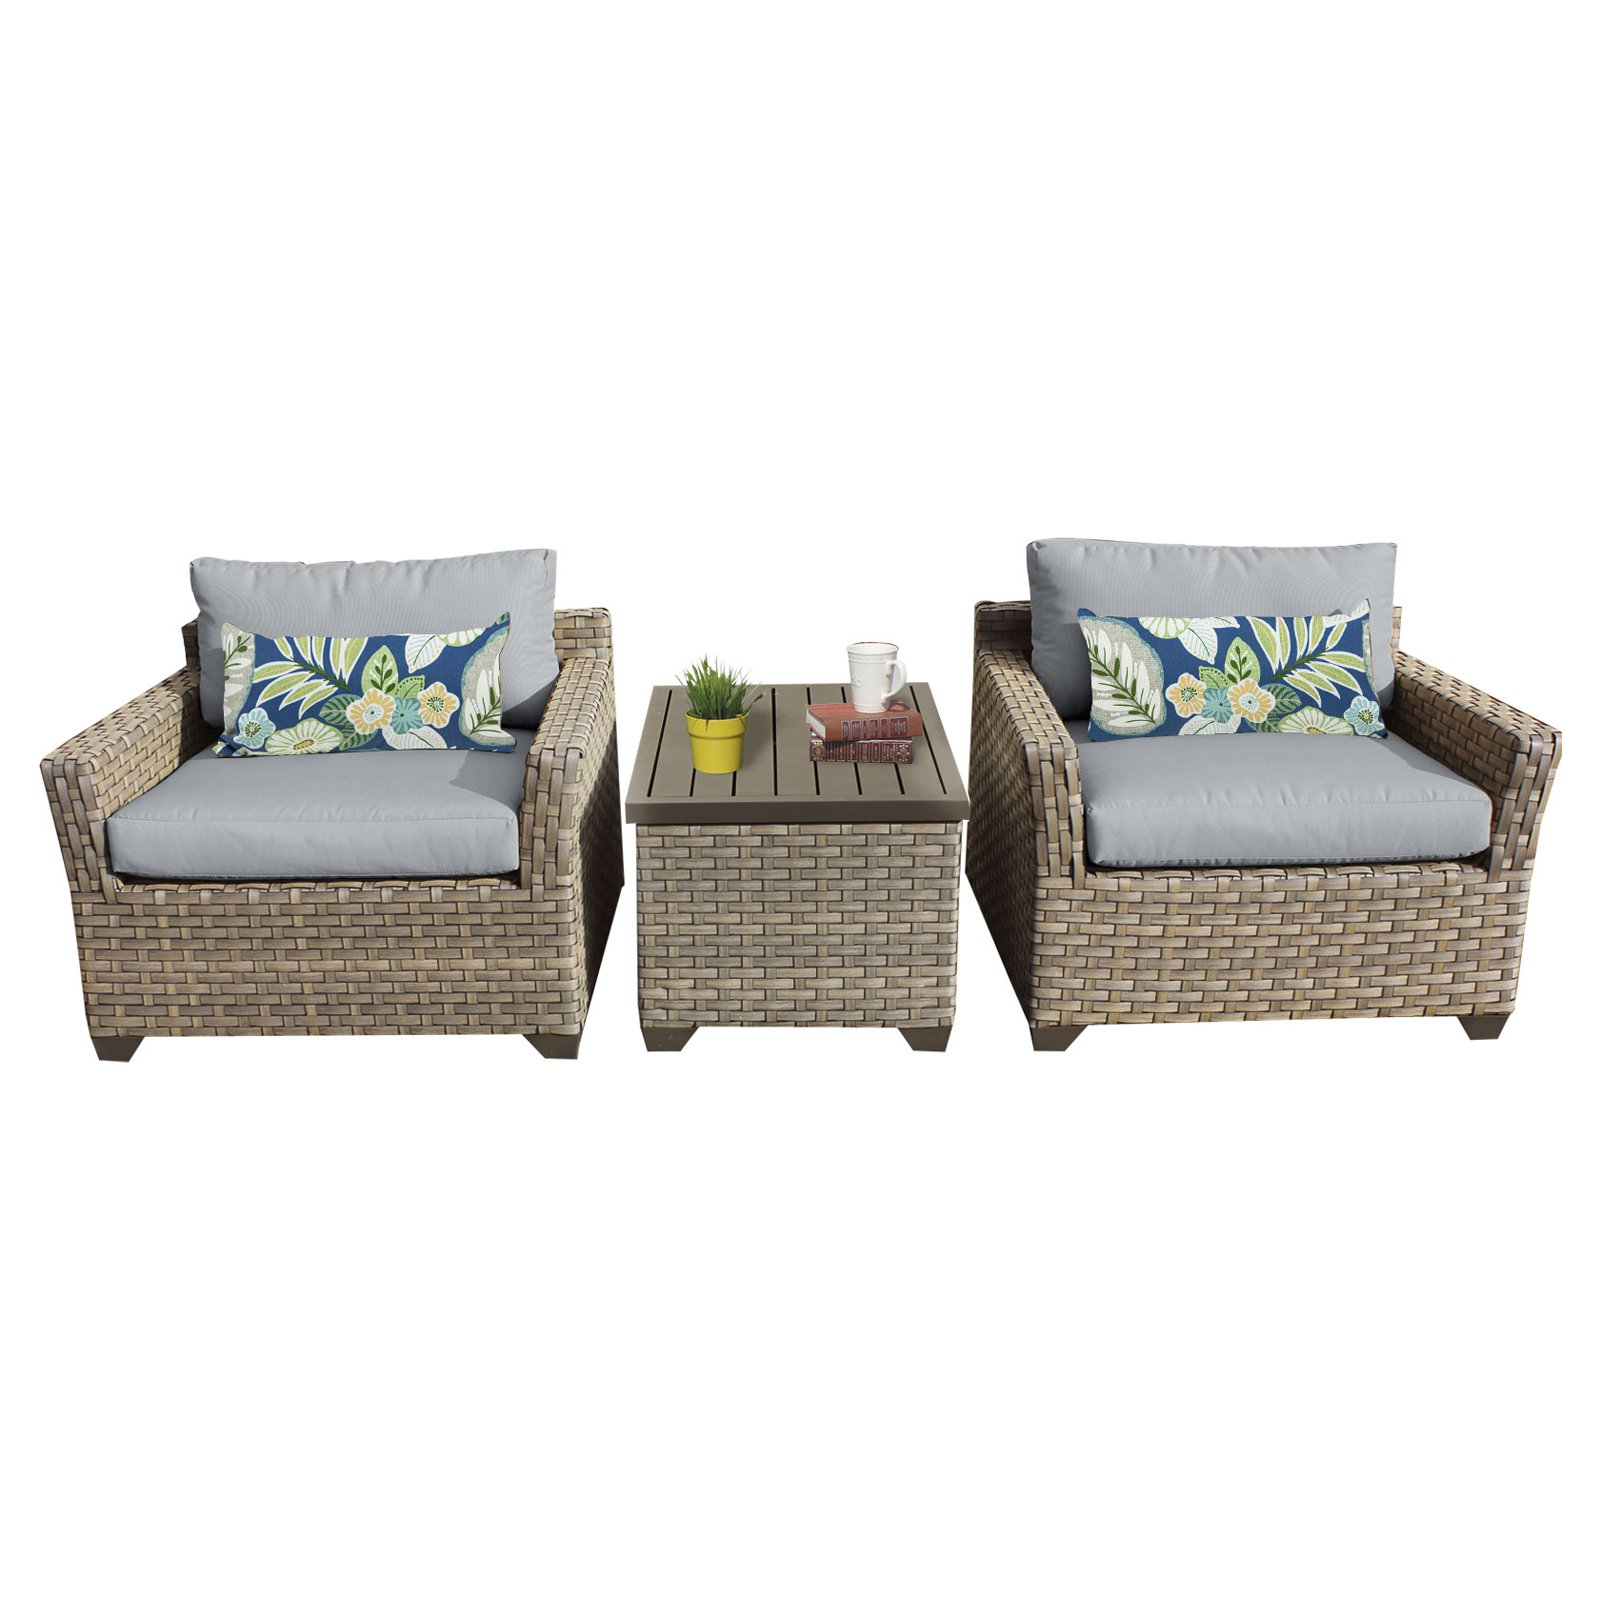 TK Classics Monterey Wicker 3 Piece Patio Conversation Set with 2 Sets of Cushion